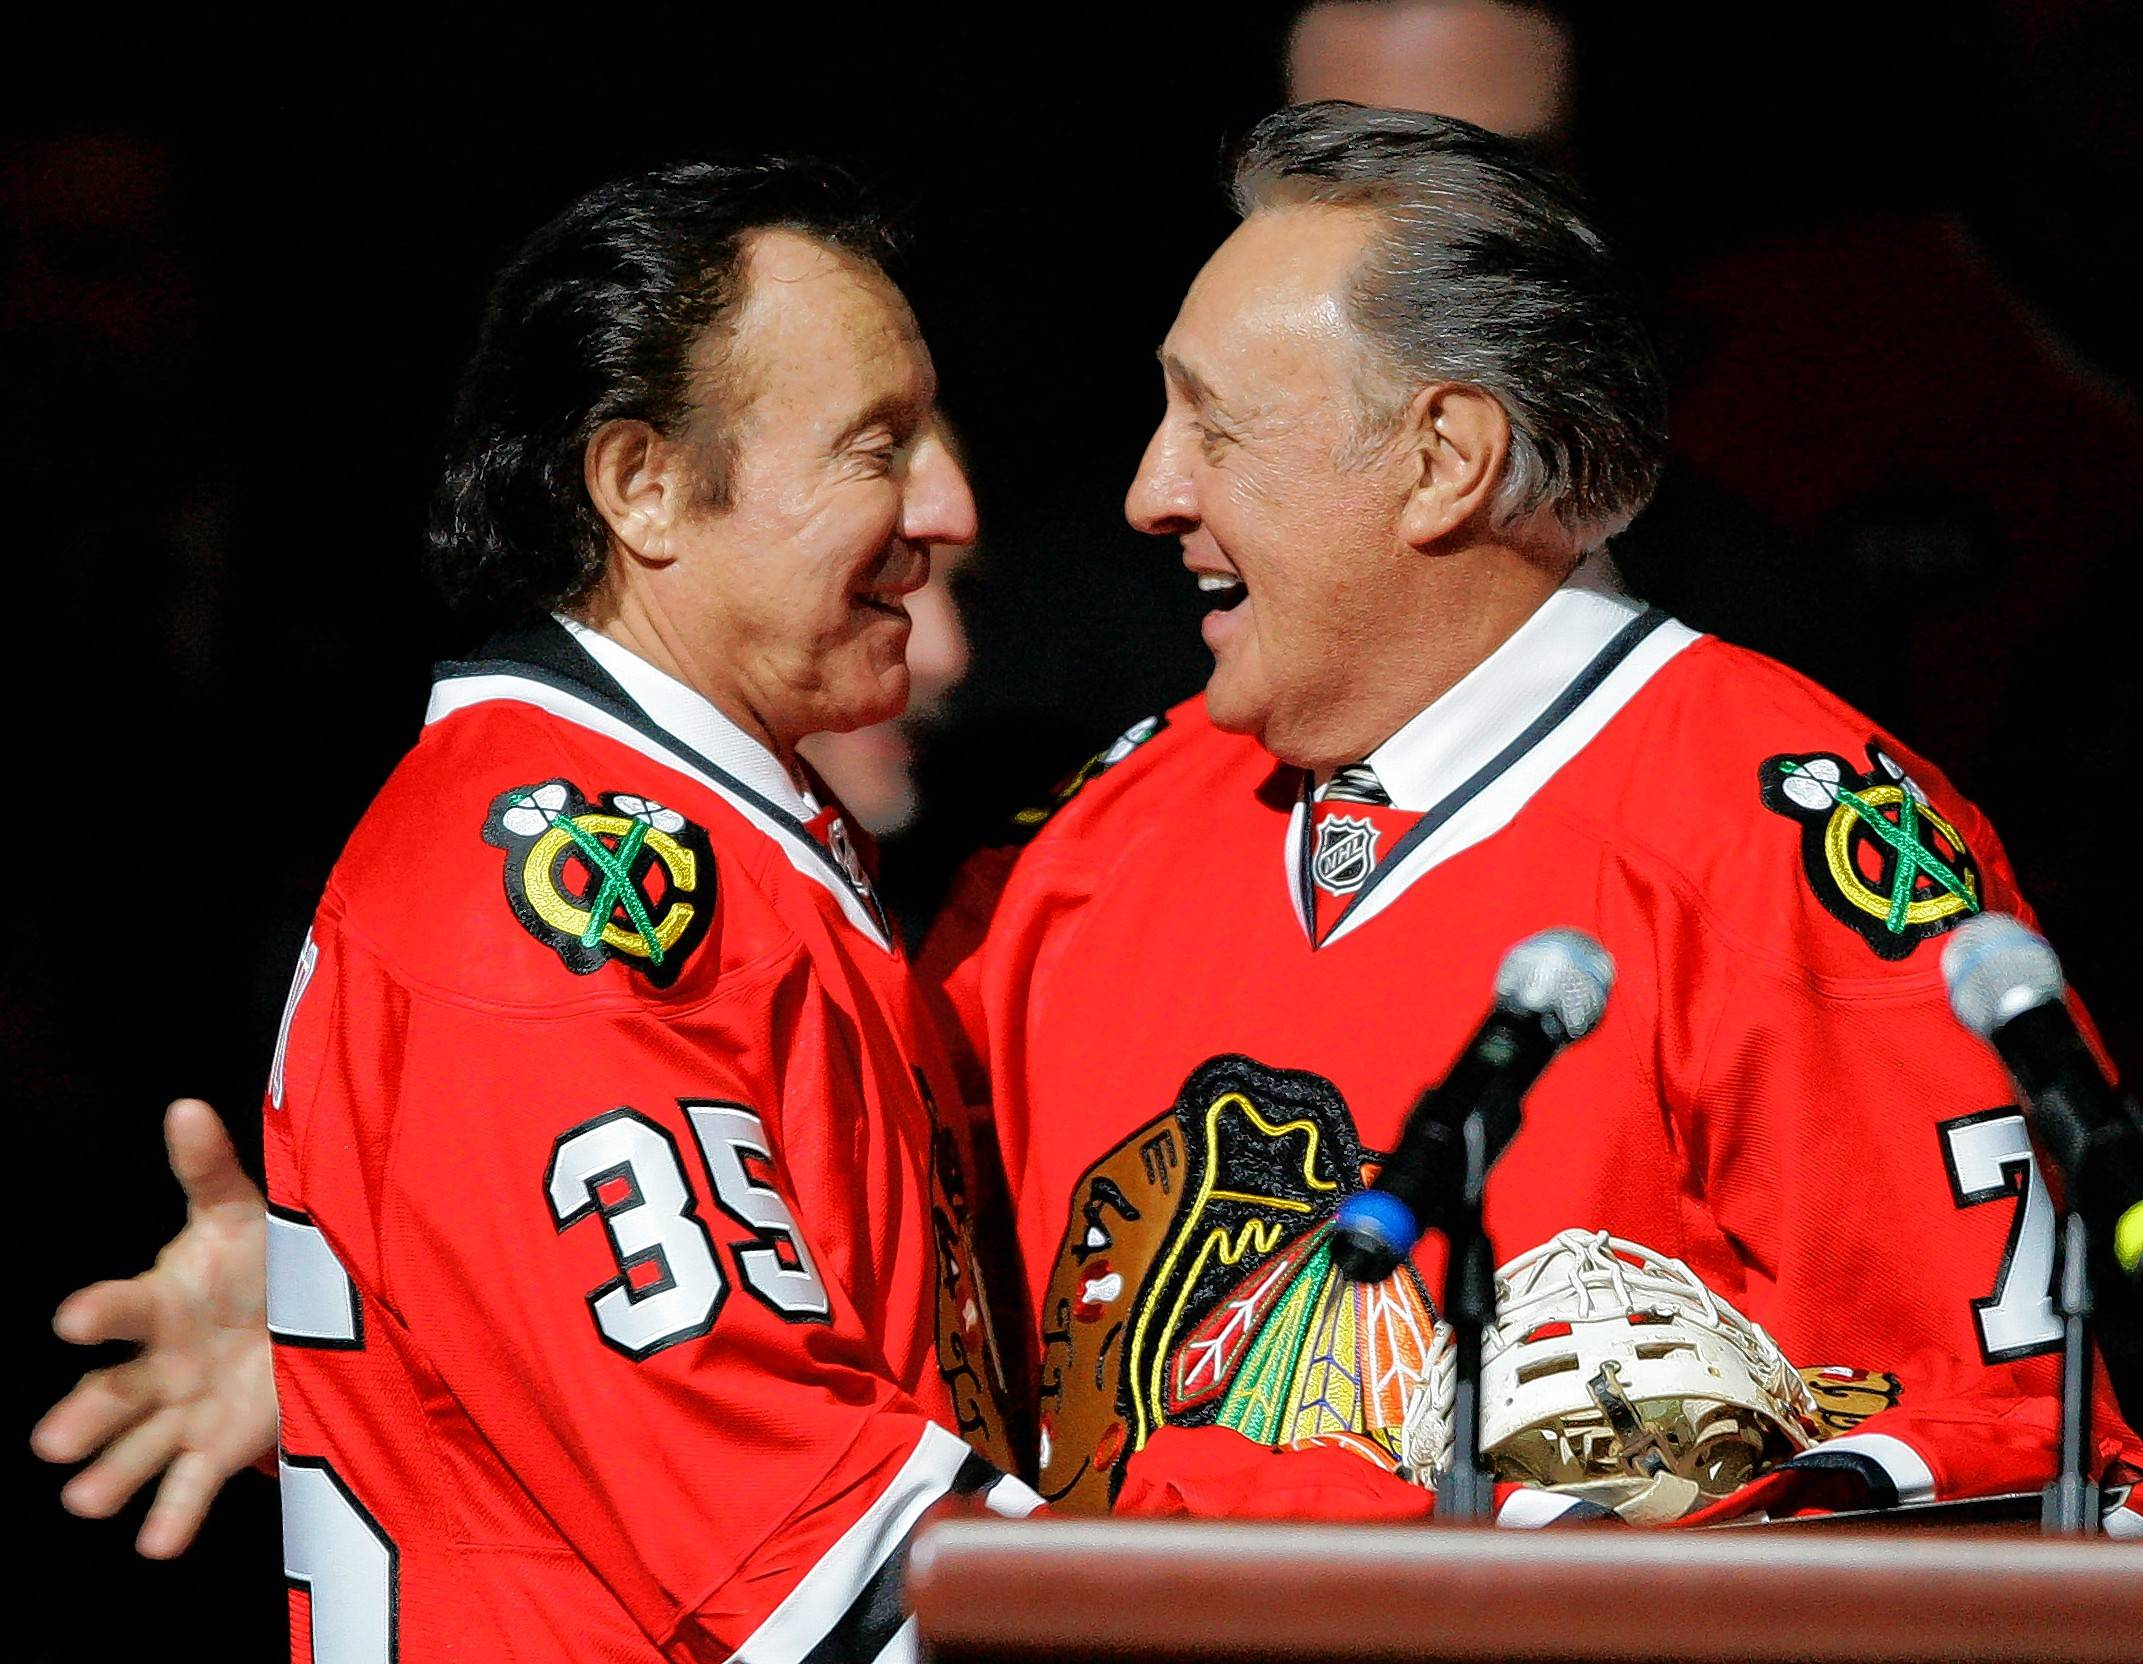 Blackhawks' One More Shift to honor Tony and Phil Esposito